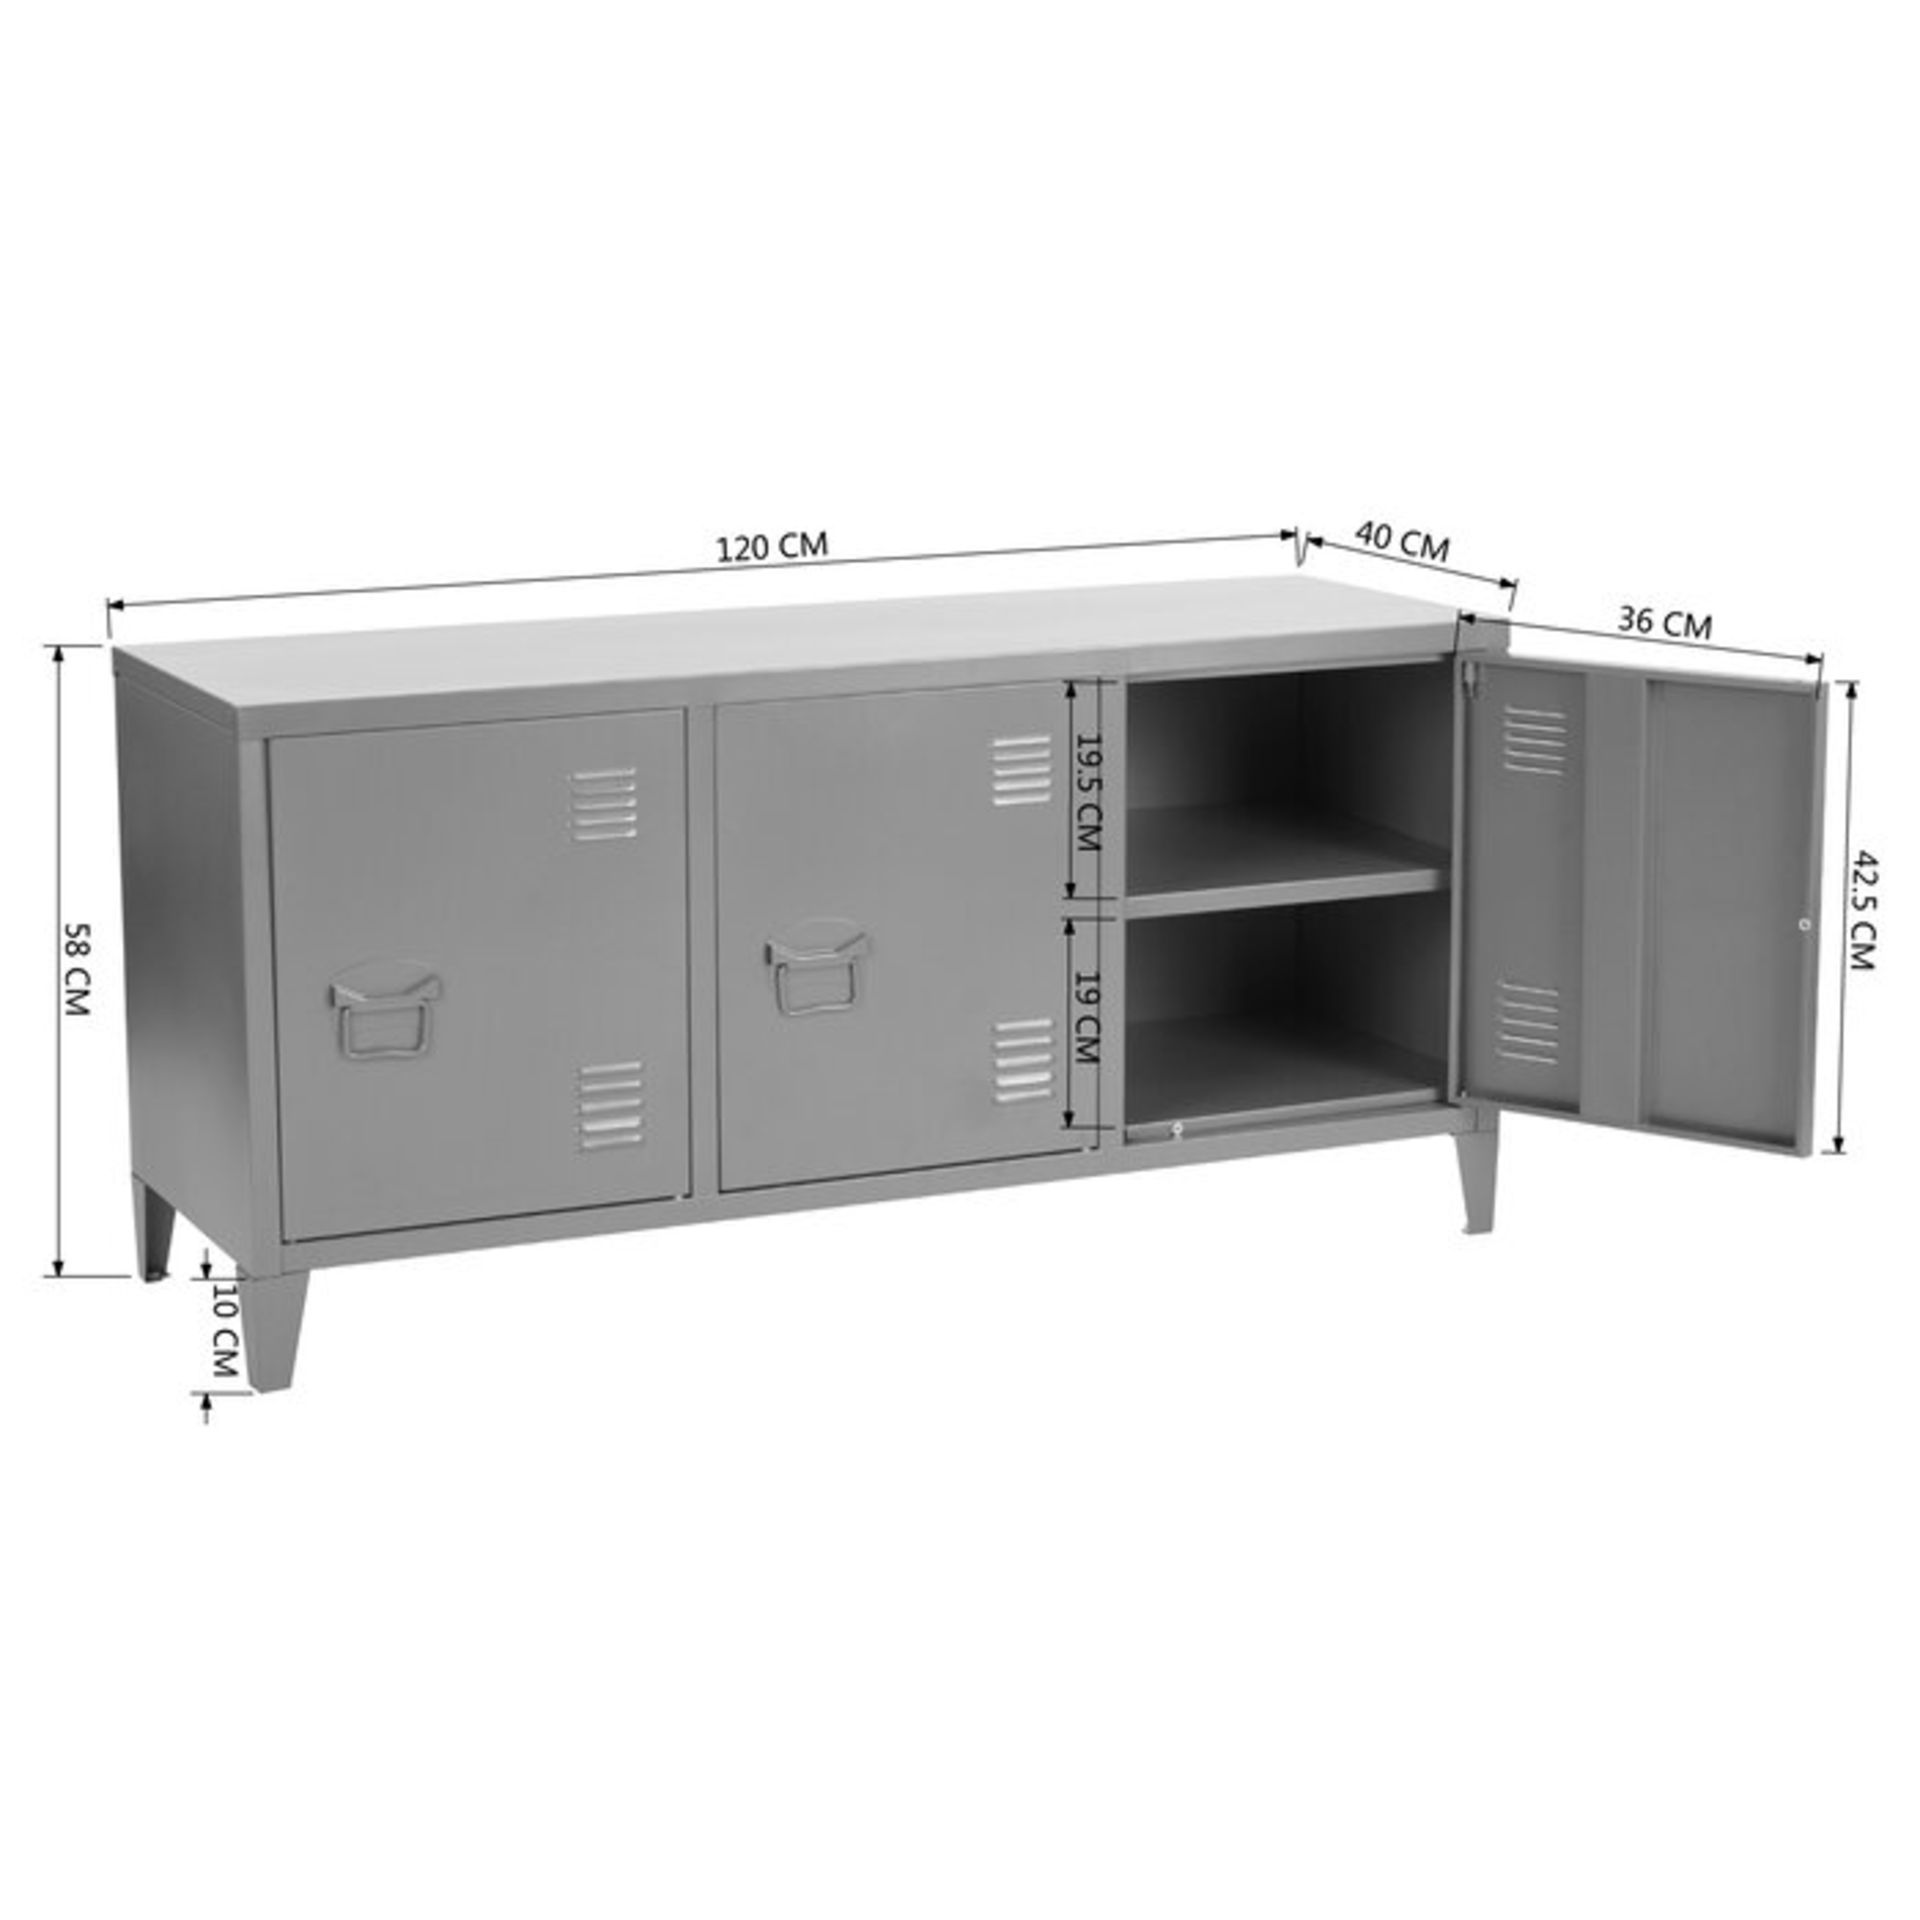 Polina Sideboard - RRP £99.99 - Image 3 of 3